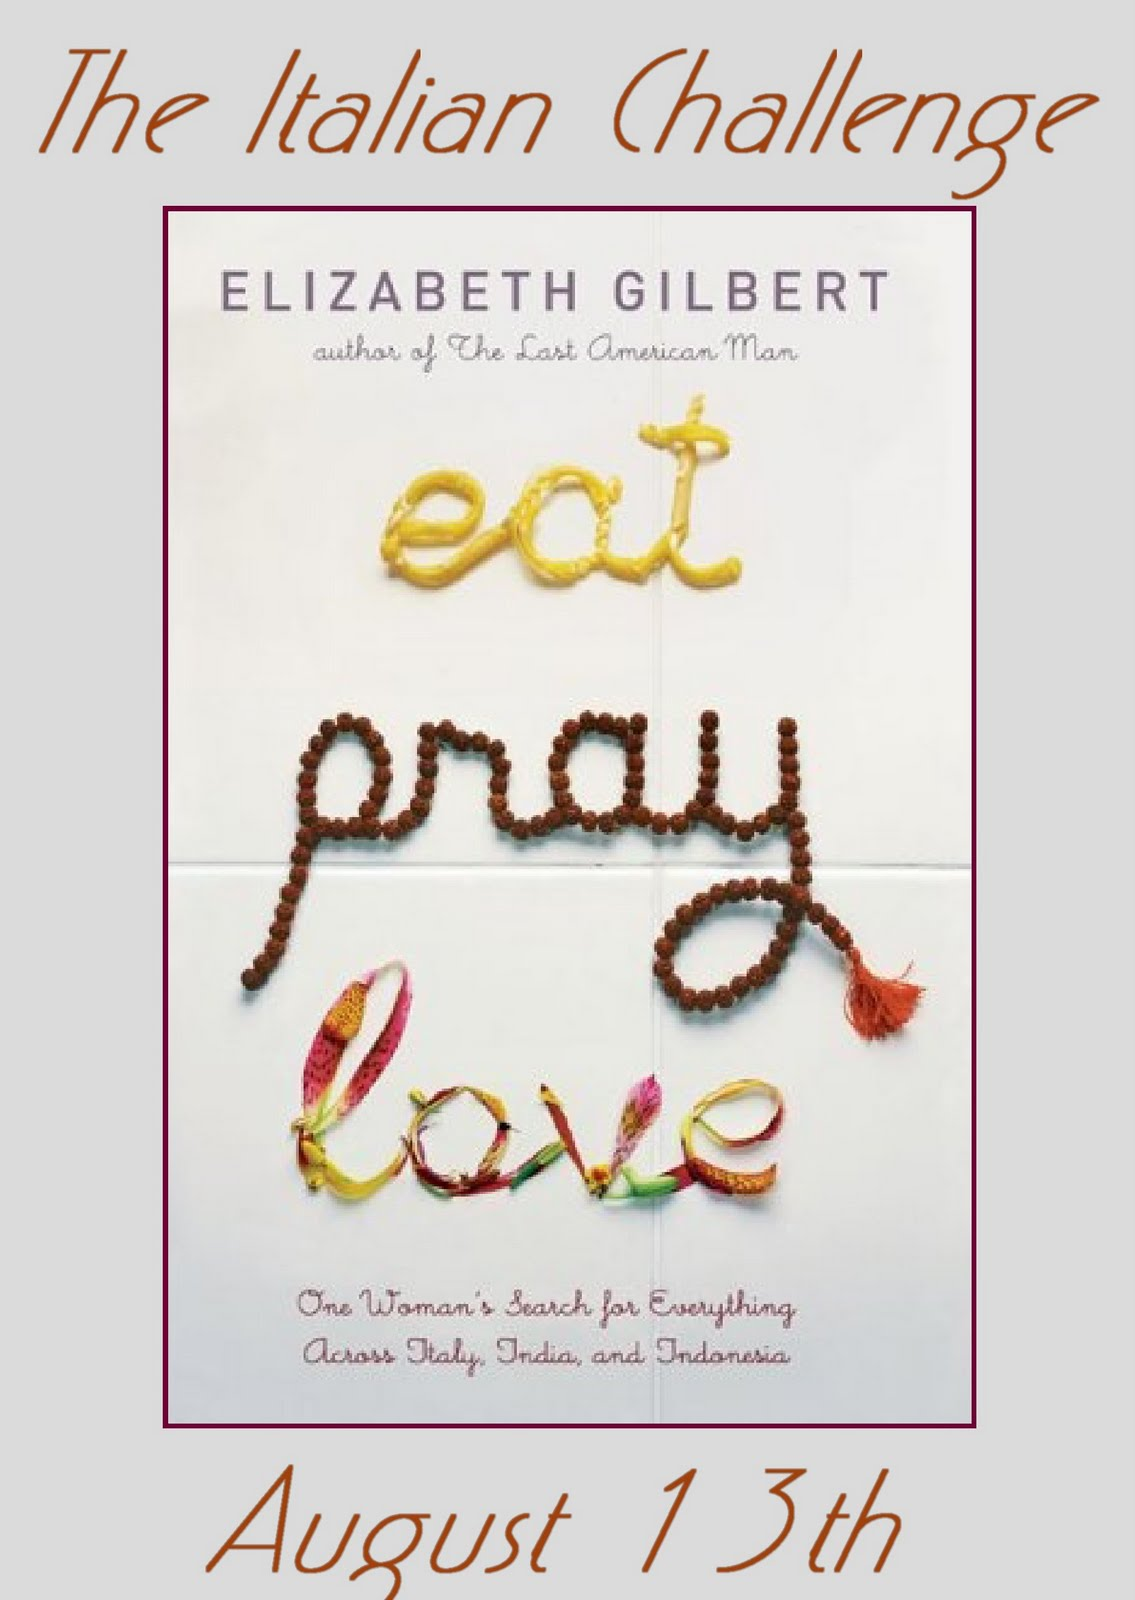 eat pray love by elizabeth gilbert Elizabeth gilbert, the author behind the blockbuster memoir eat pray love, has announced the death of her partner rayya elias, who had been fighting incurable pancreatic and liver cancer since.